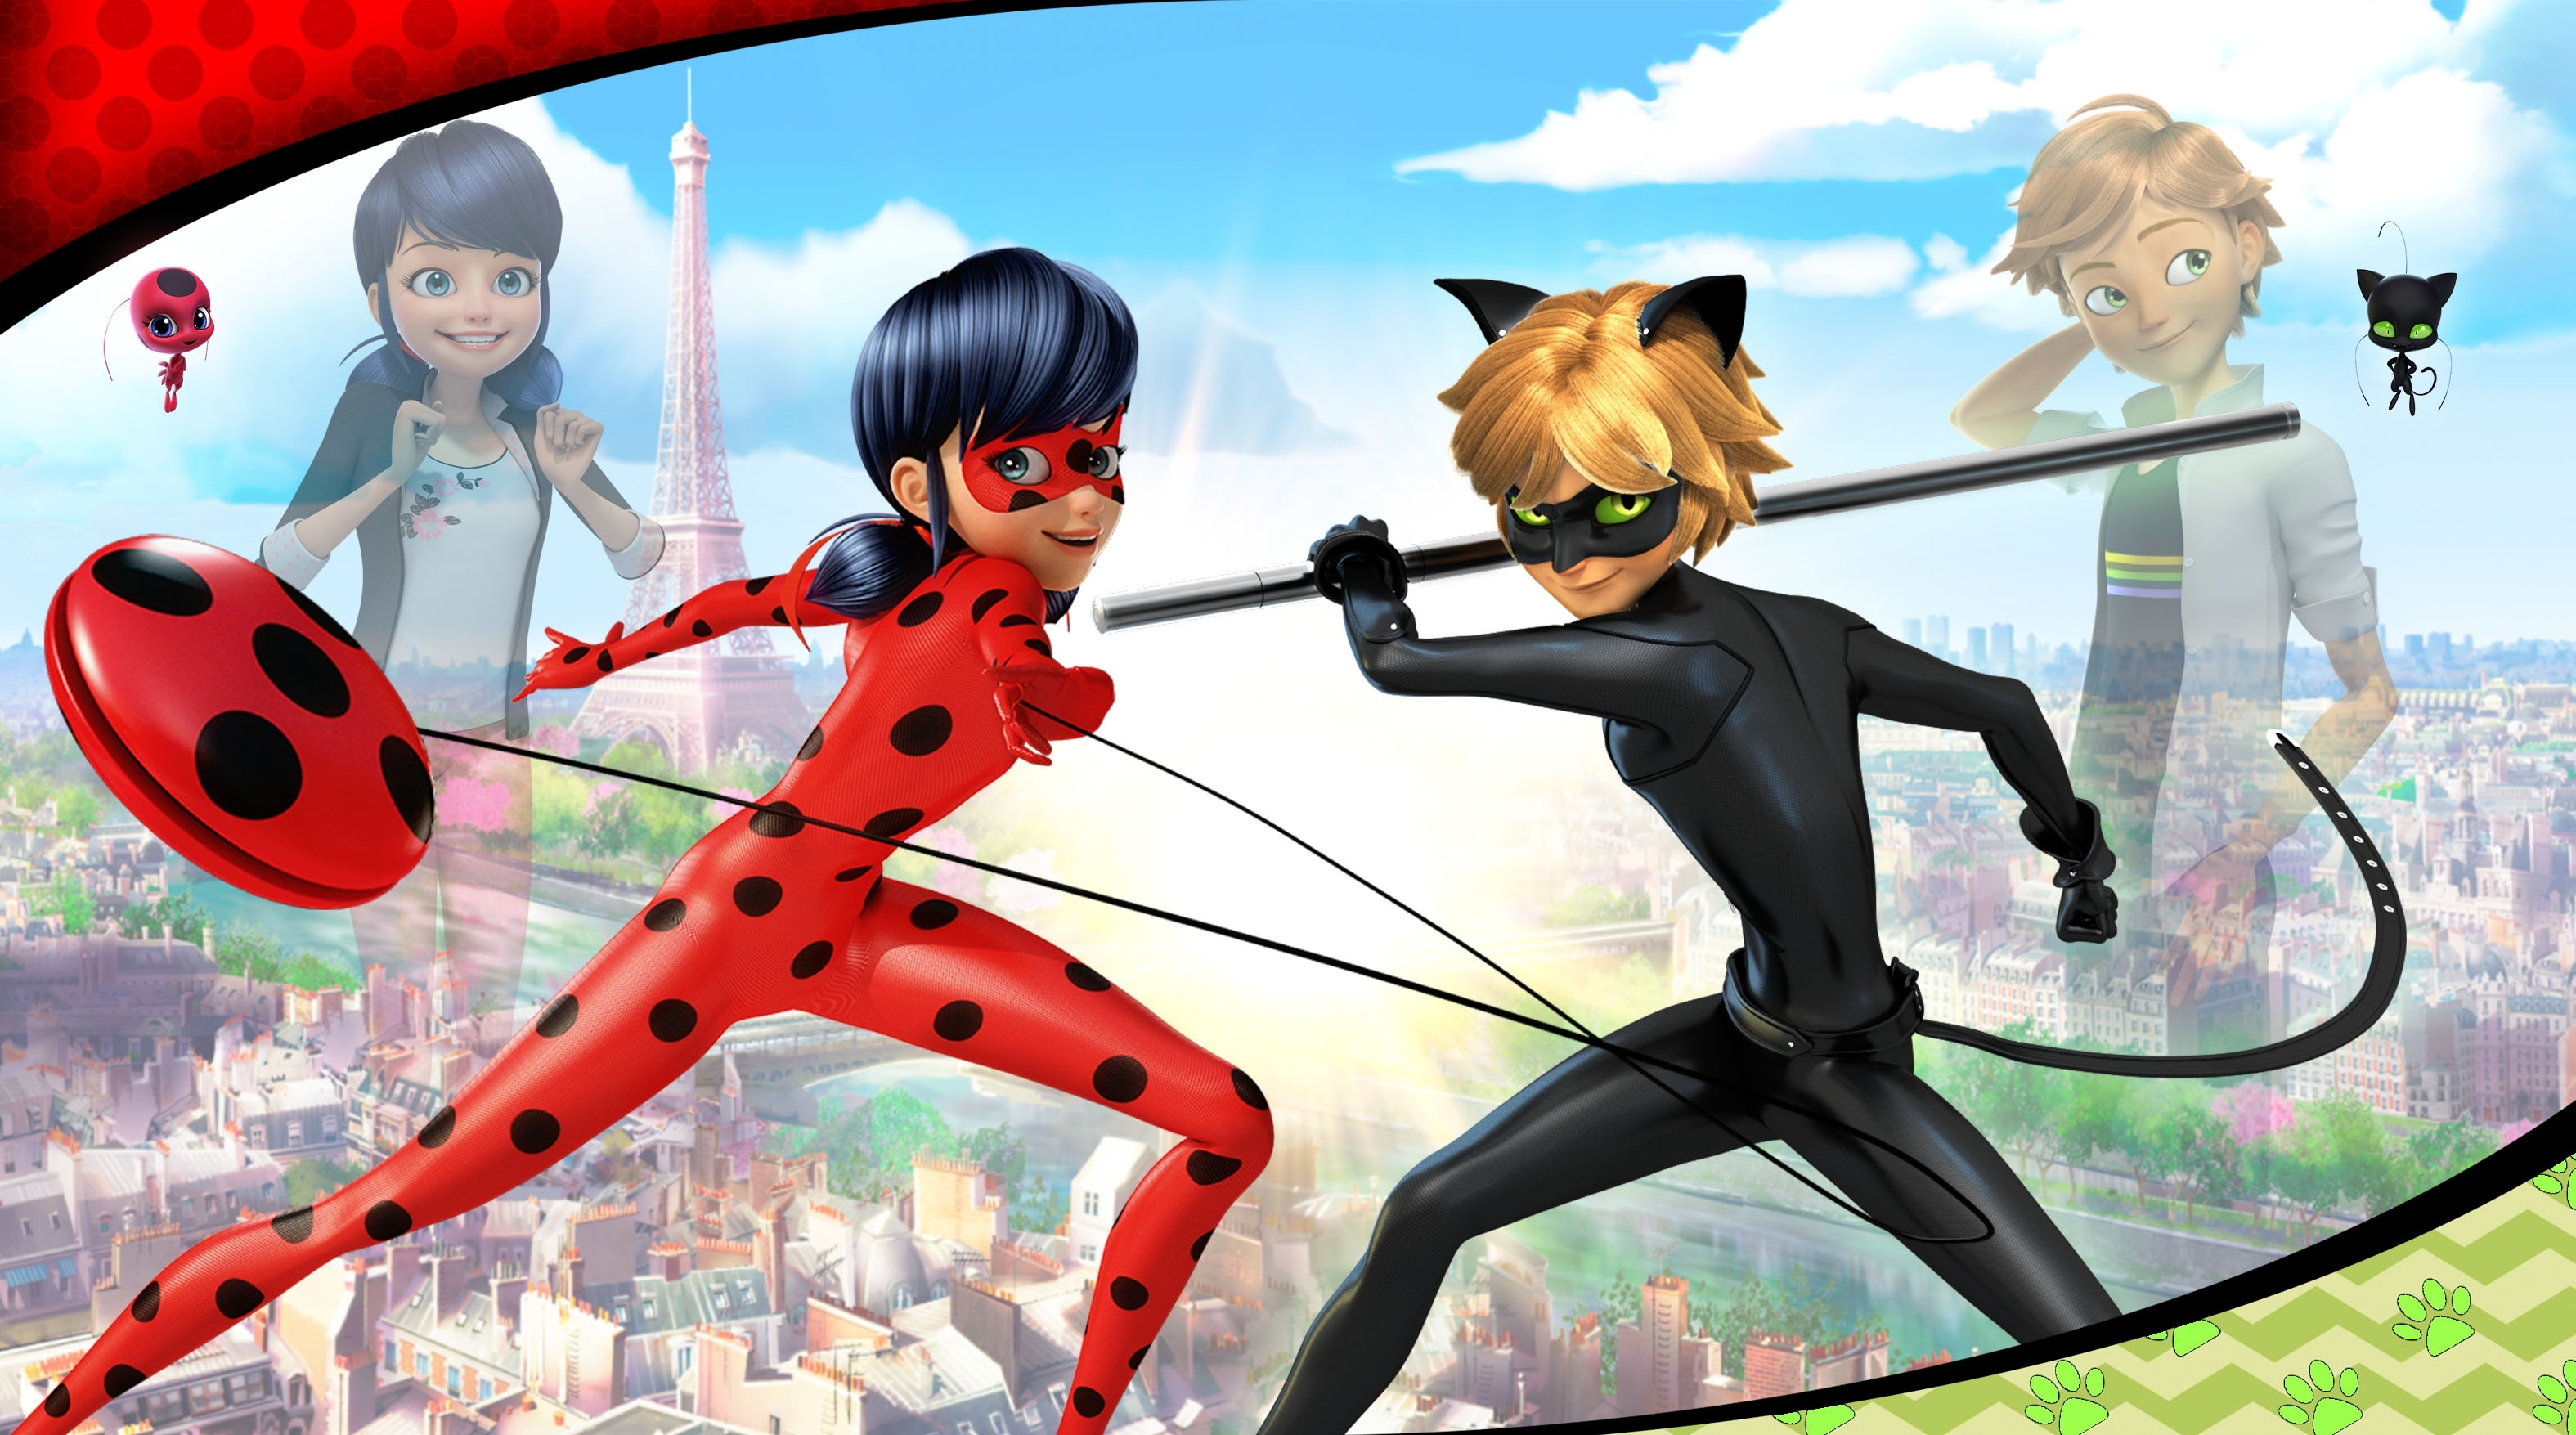 miraculous: tales of ladybug & cat noir wallpapers and background